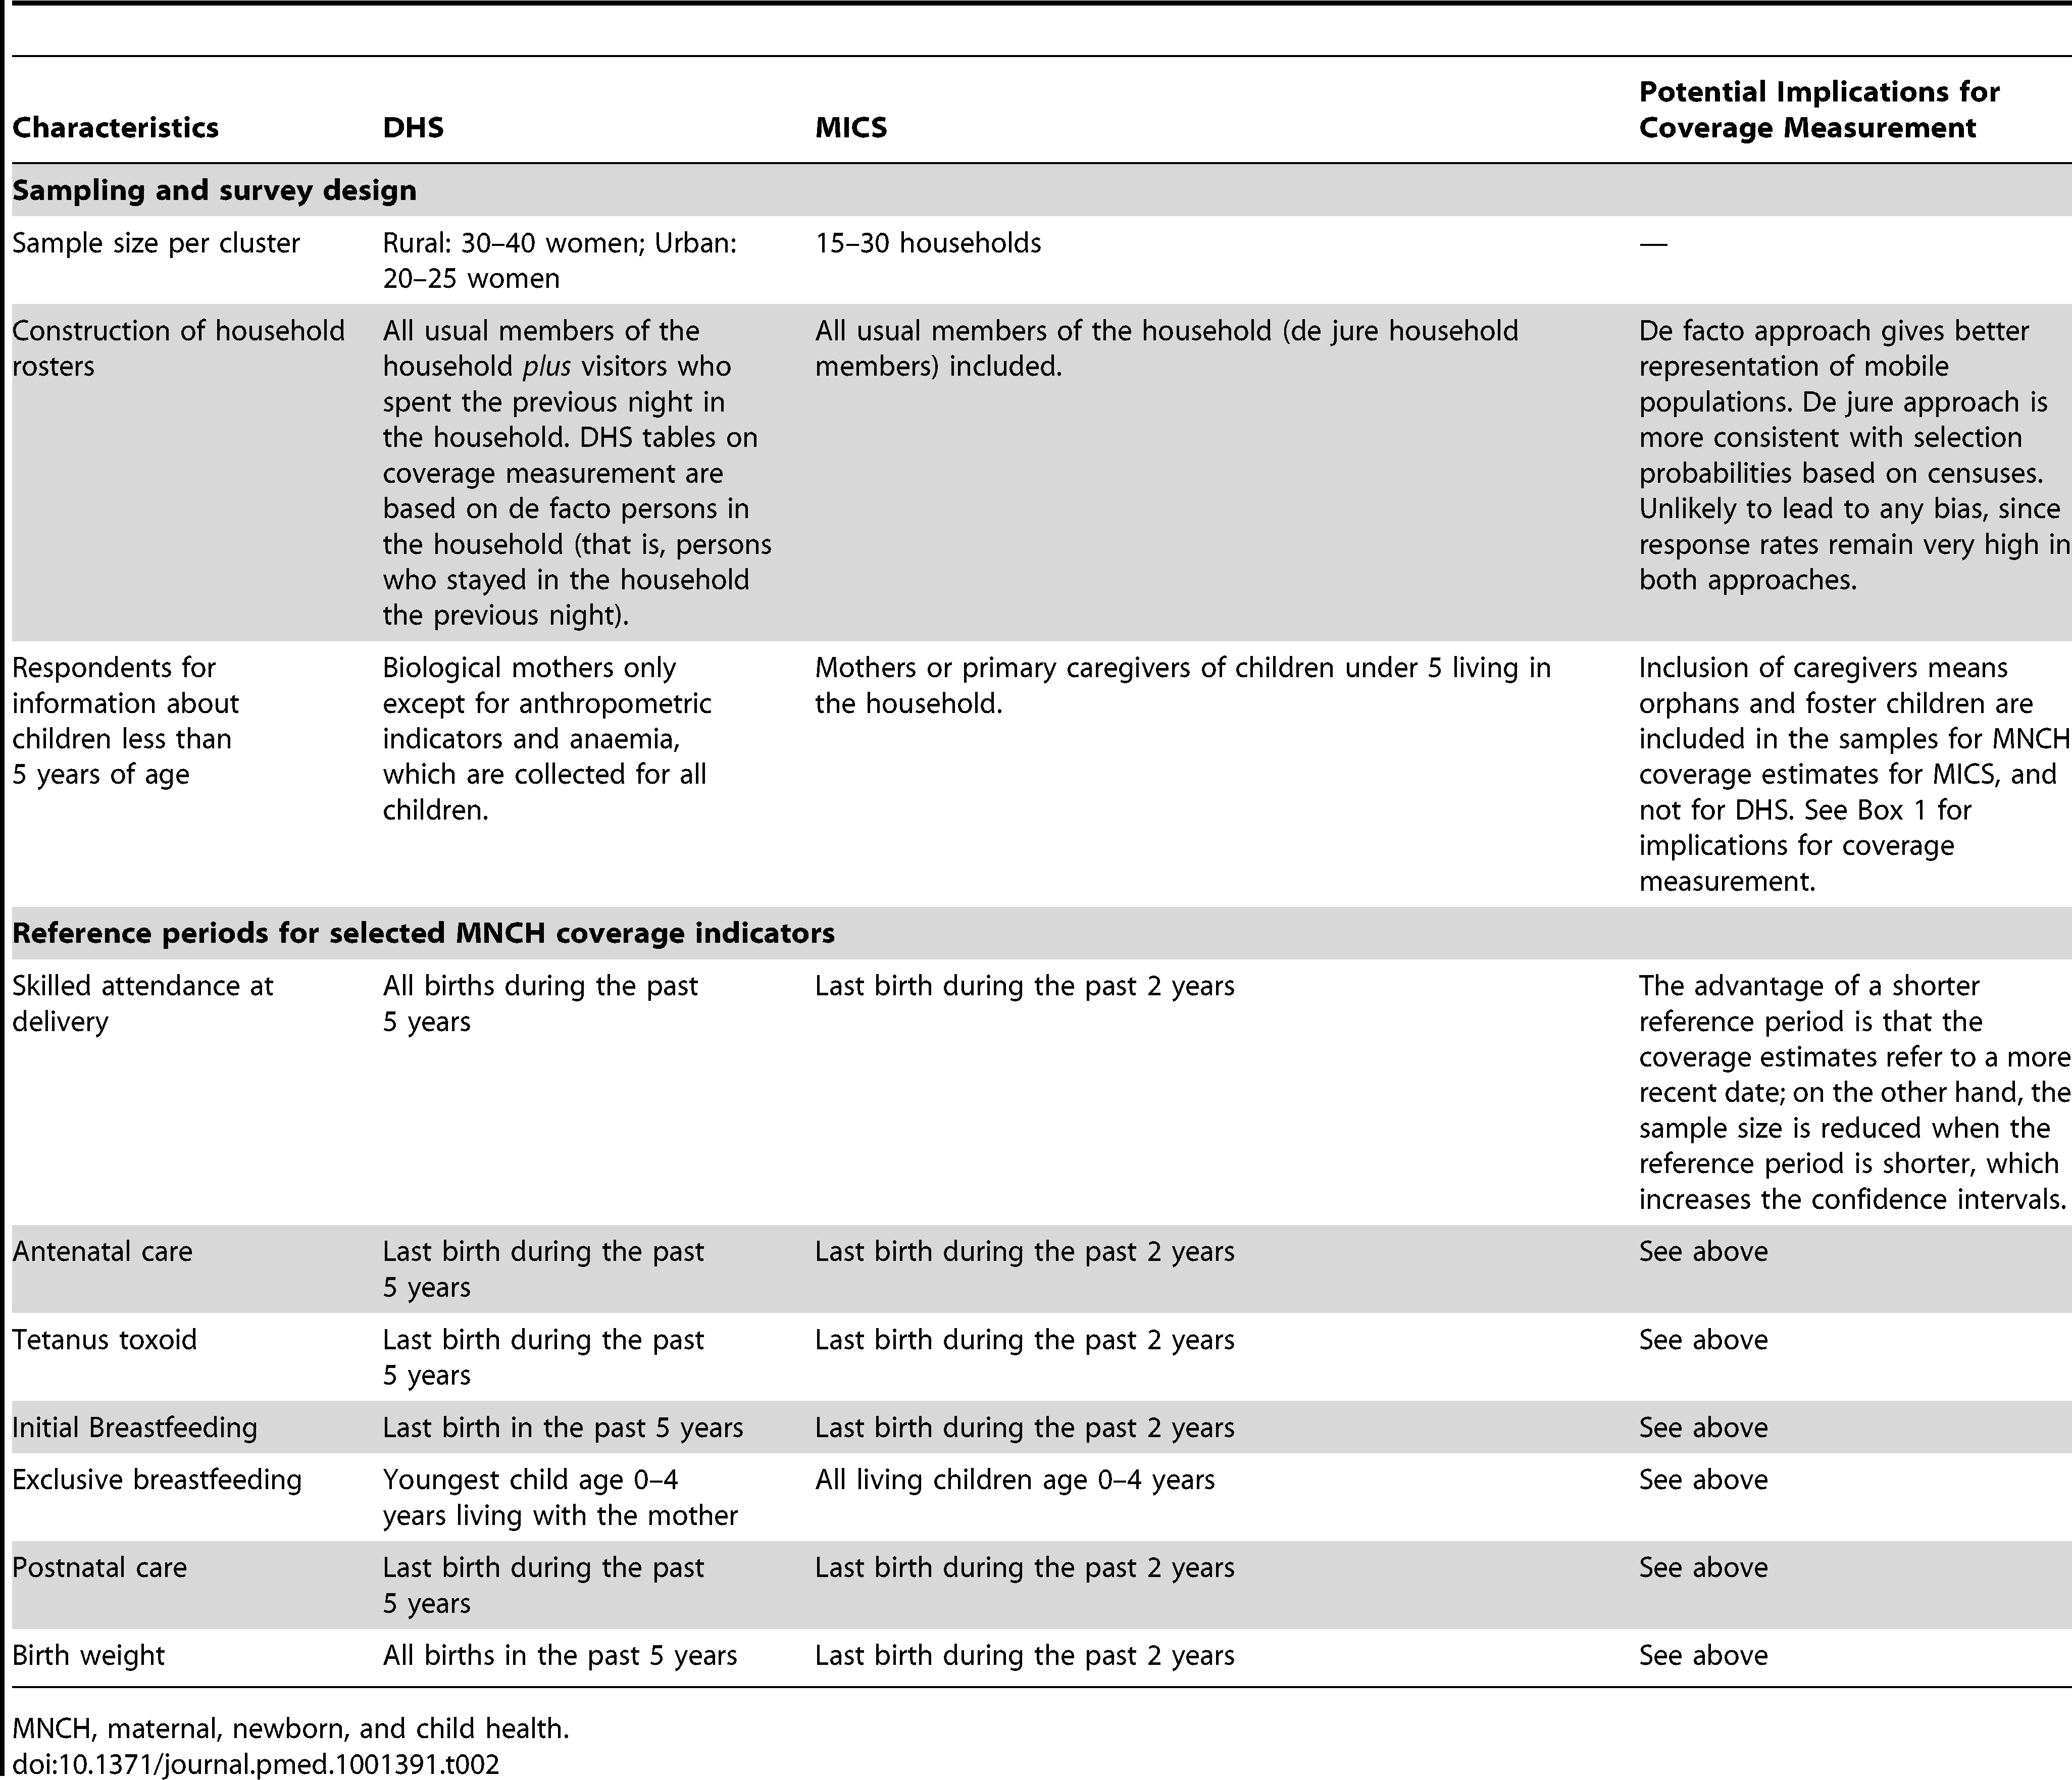 Differences between standard DHS and MICS protocols and their potential implications for coverage measurement.